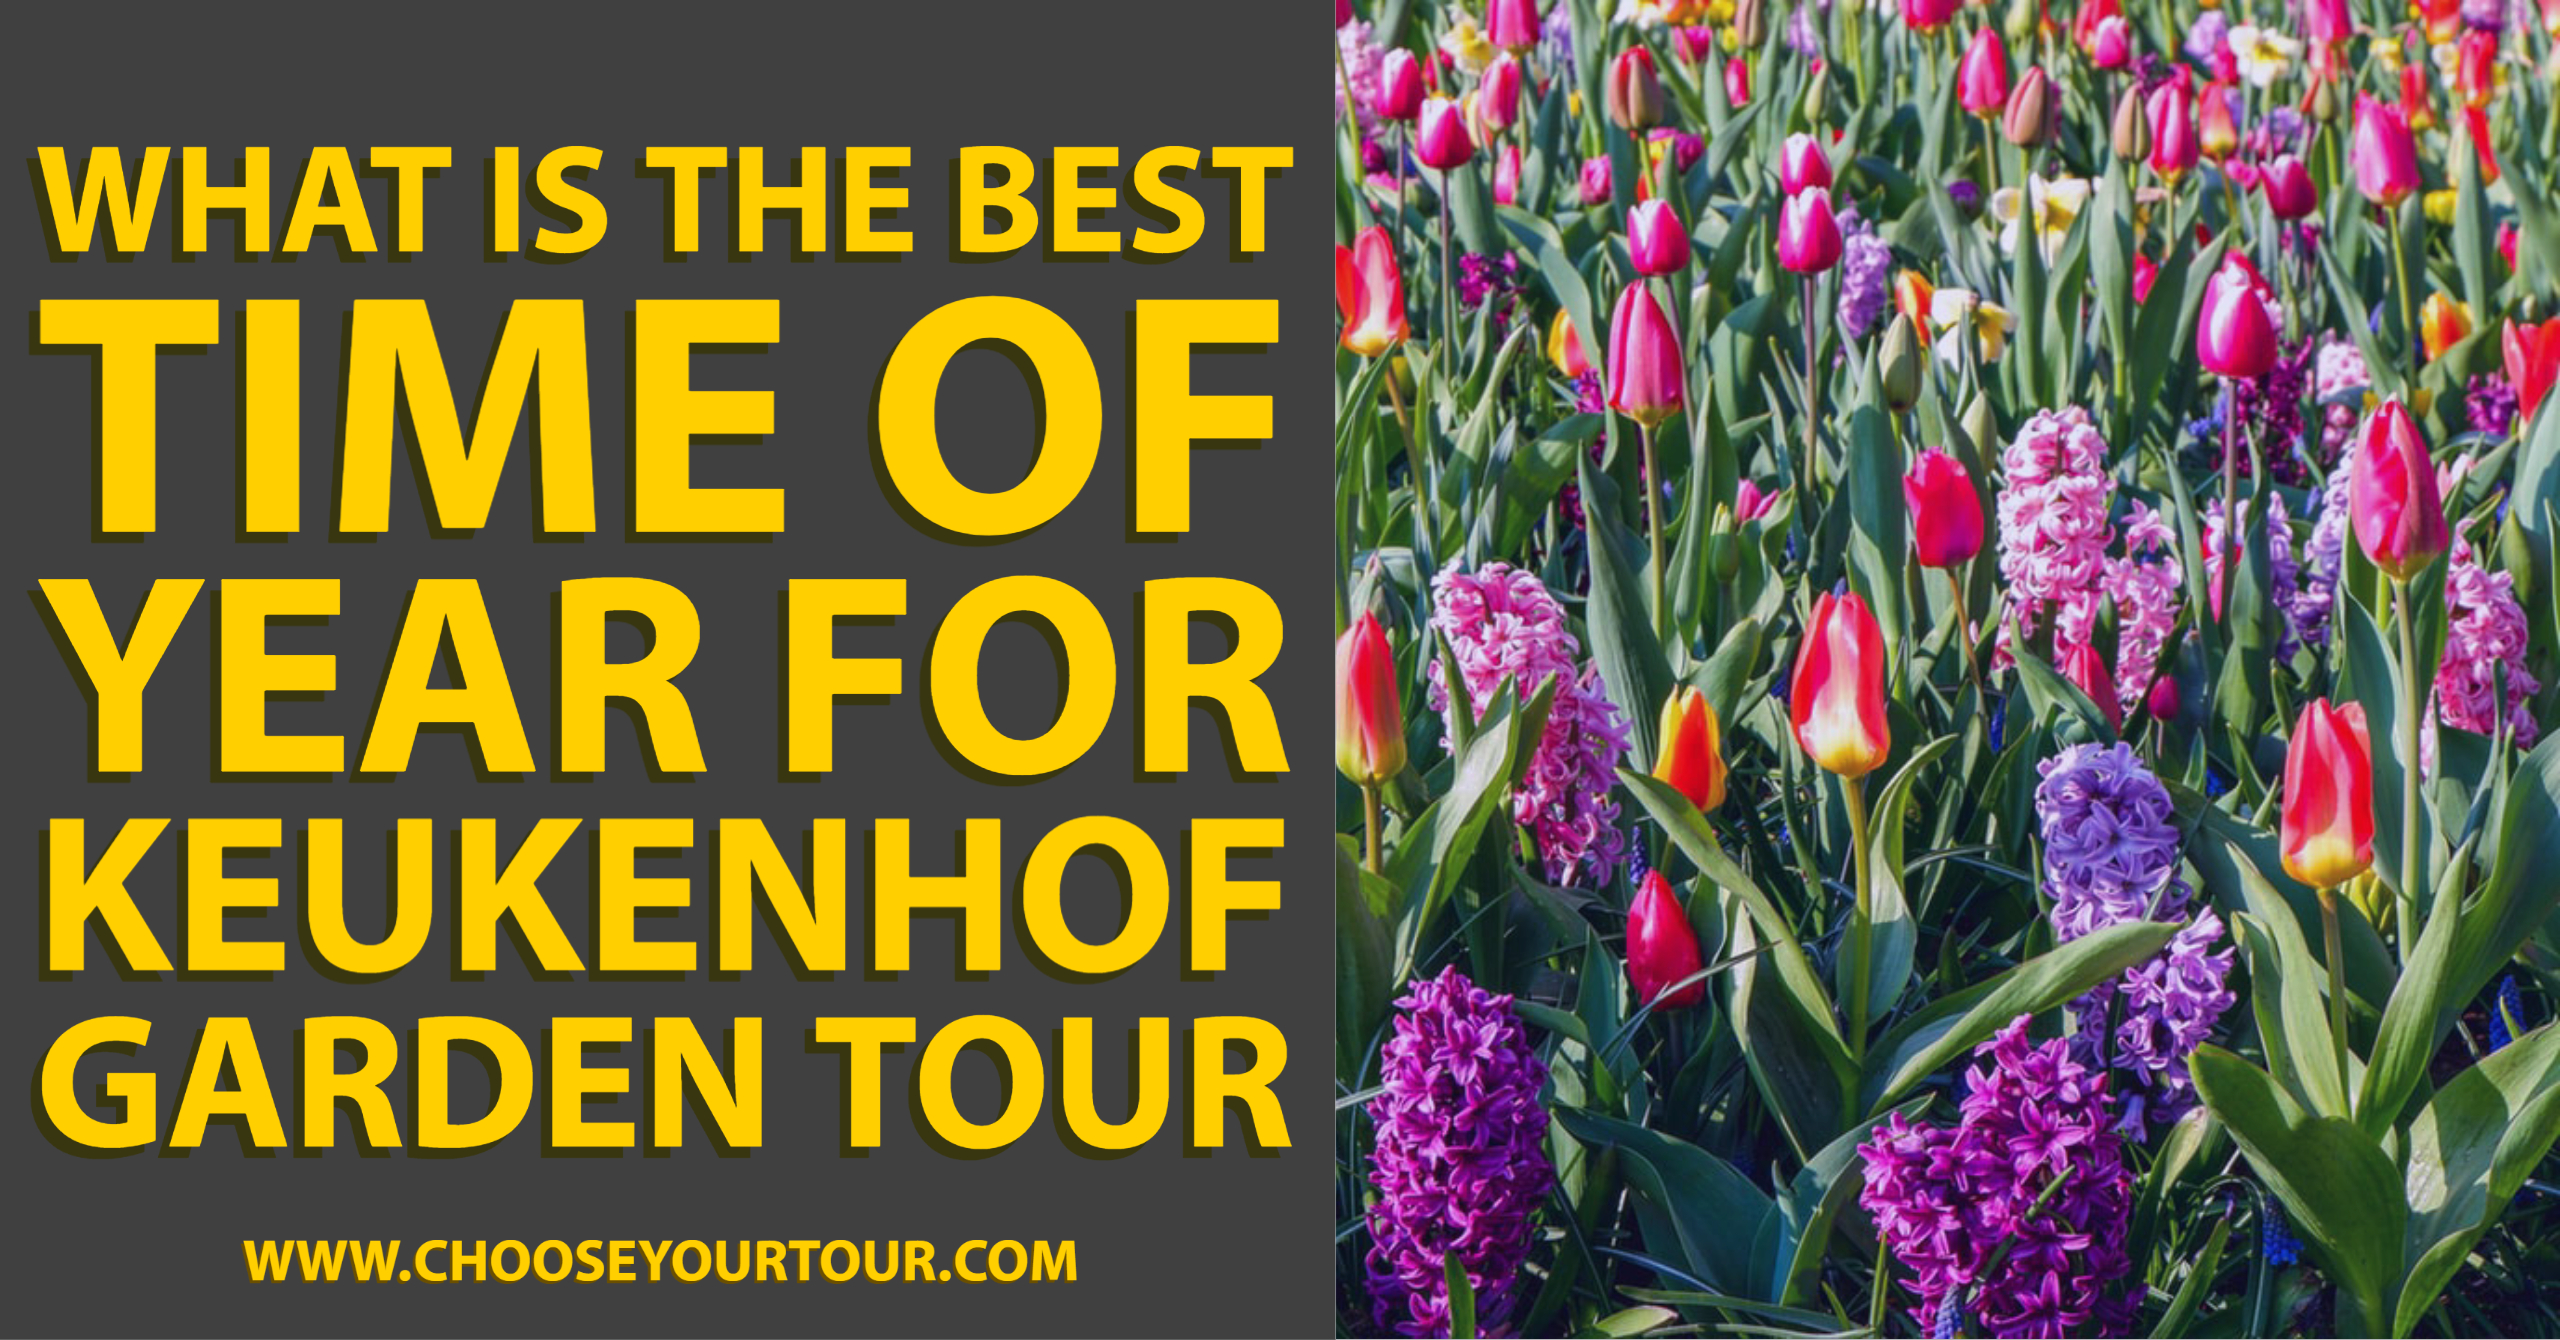 What is the Best Time of Year for Keukenhof Garden Tour